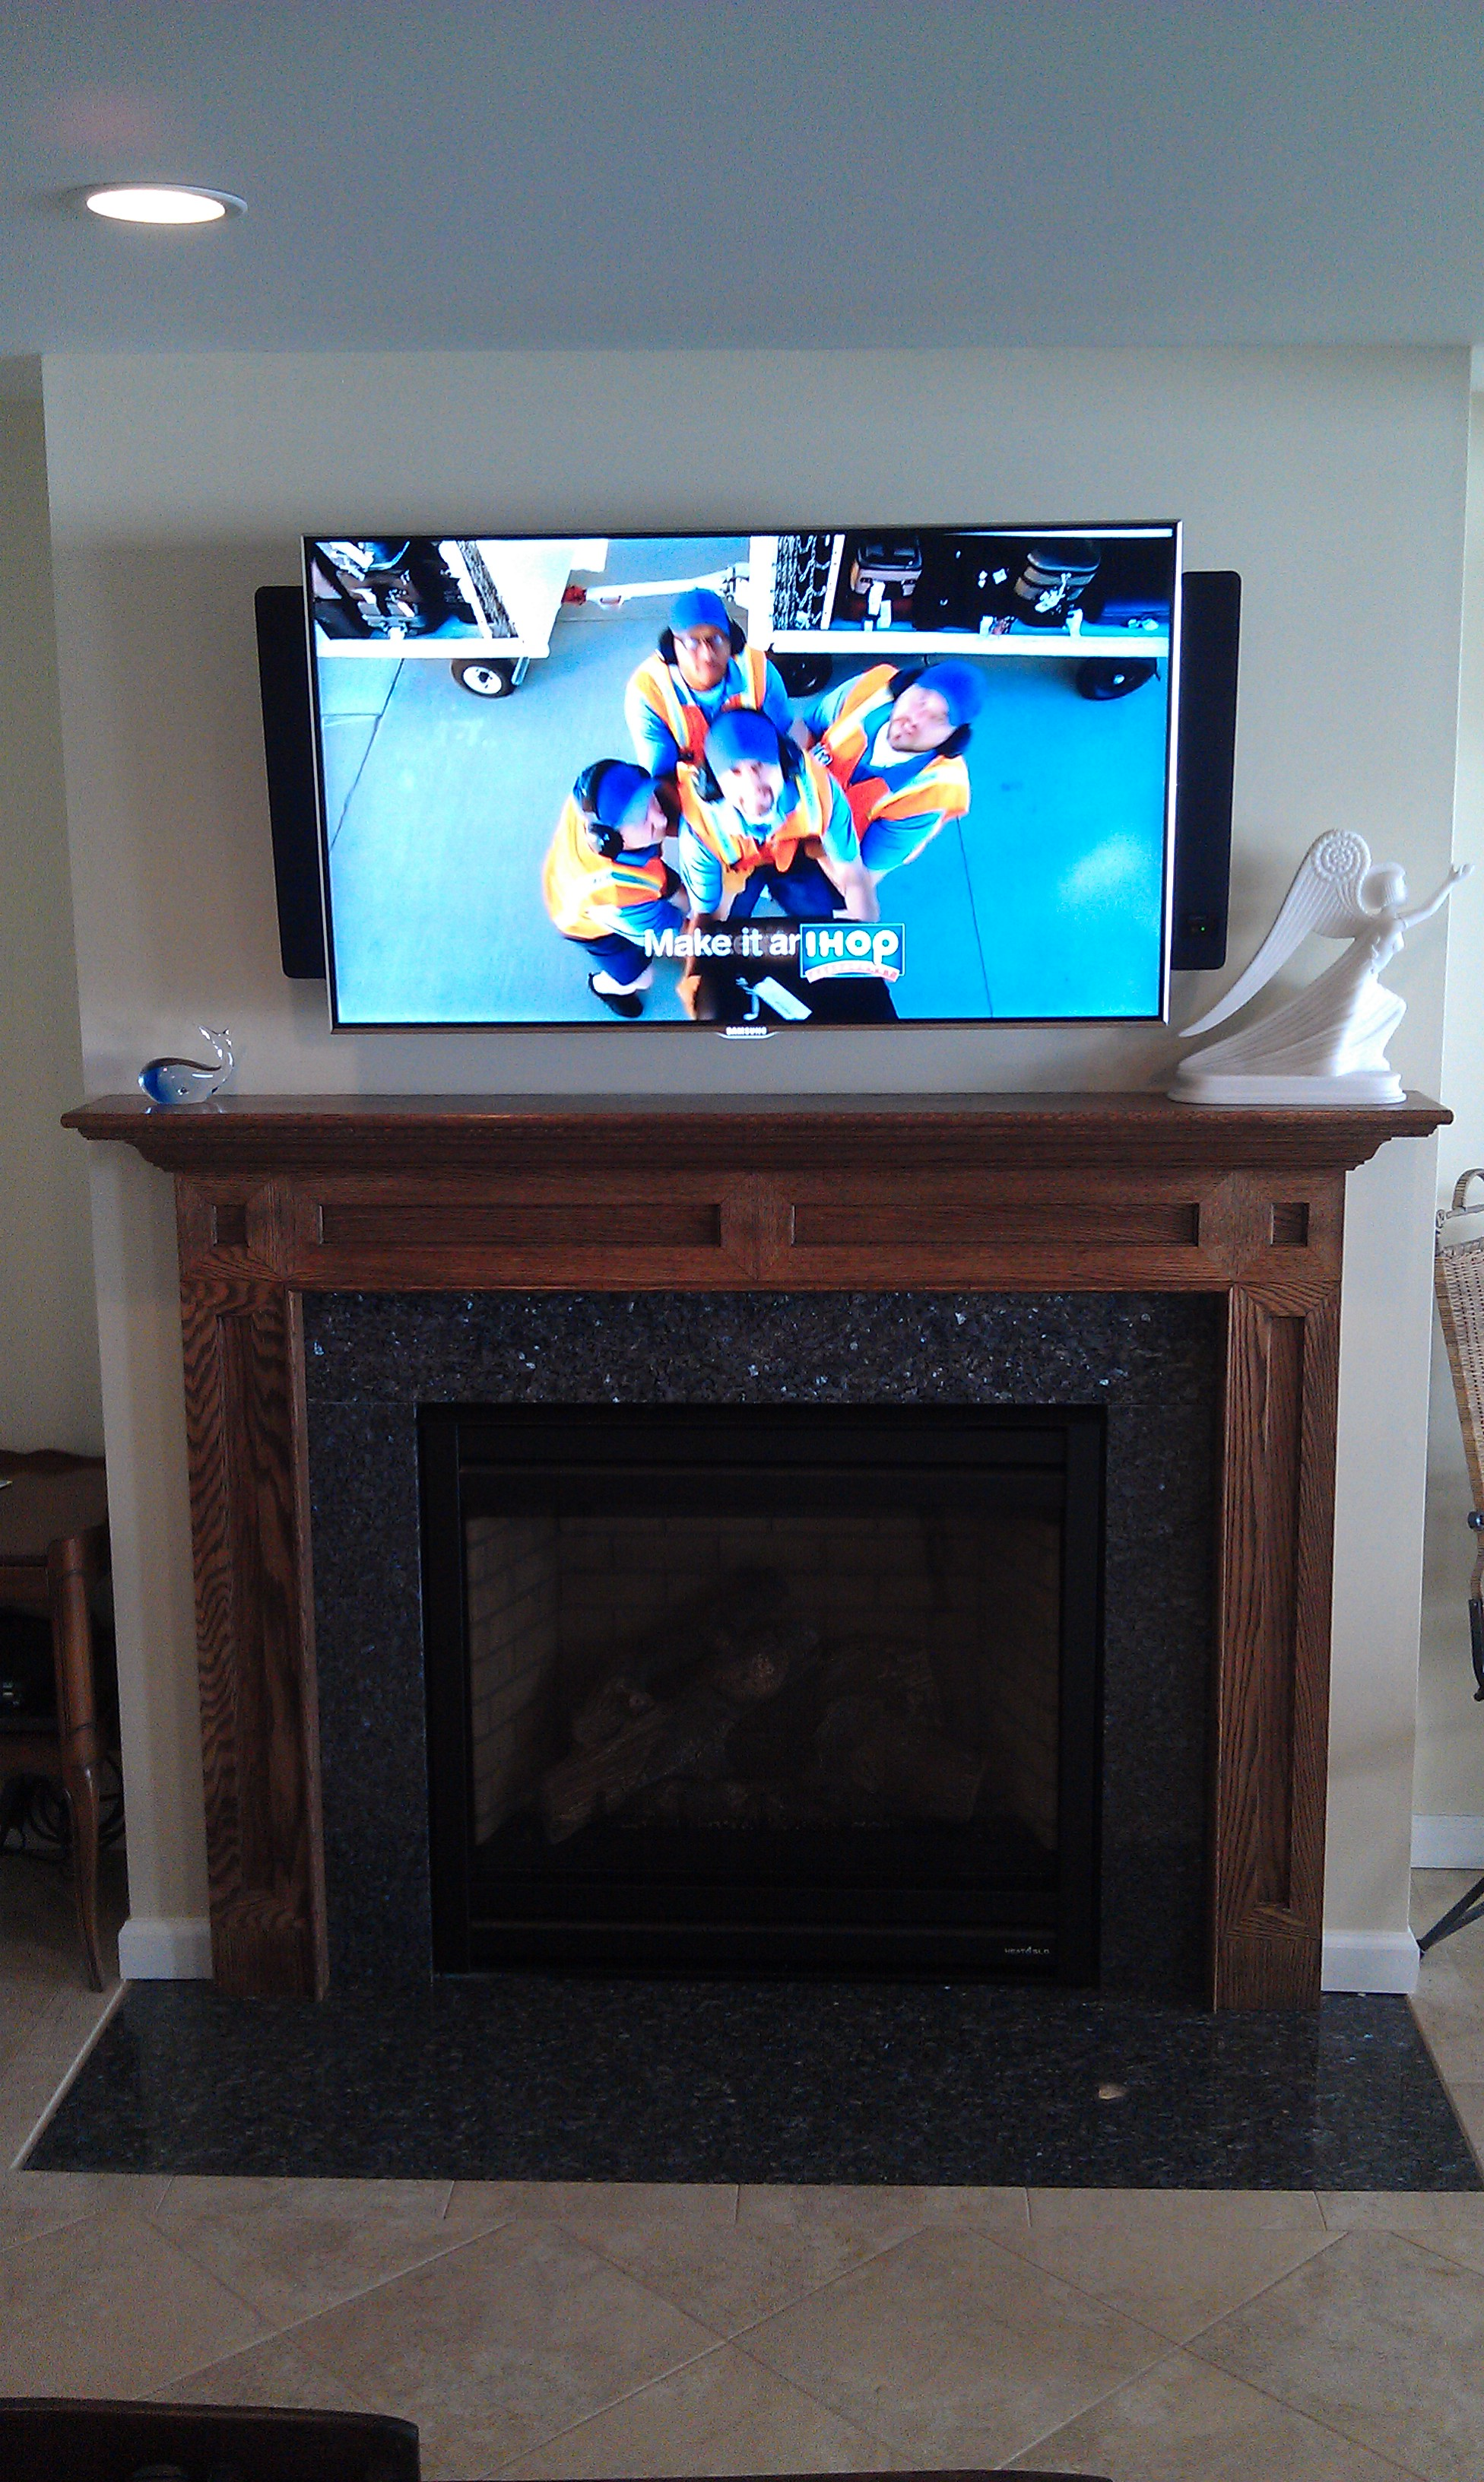 Durham Ct Mount Tv Above Fireplace Richey Group Llc Audio Video Experts